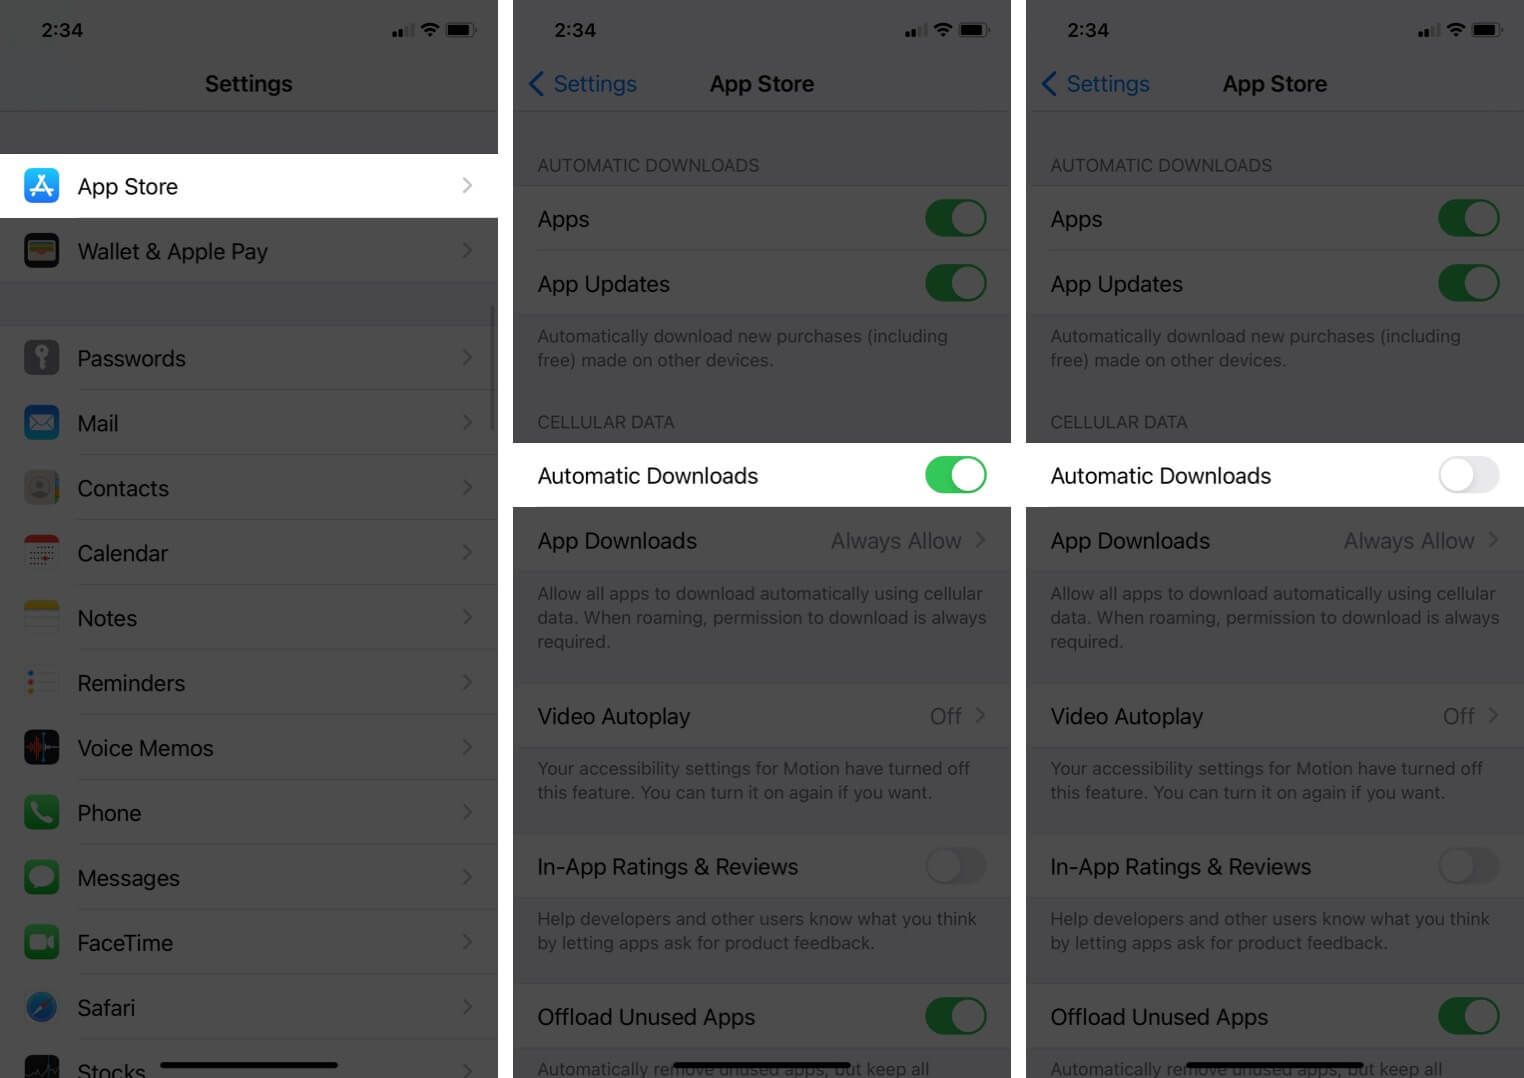 turn off automatic downloads for app store in iphone settings